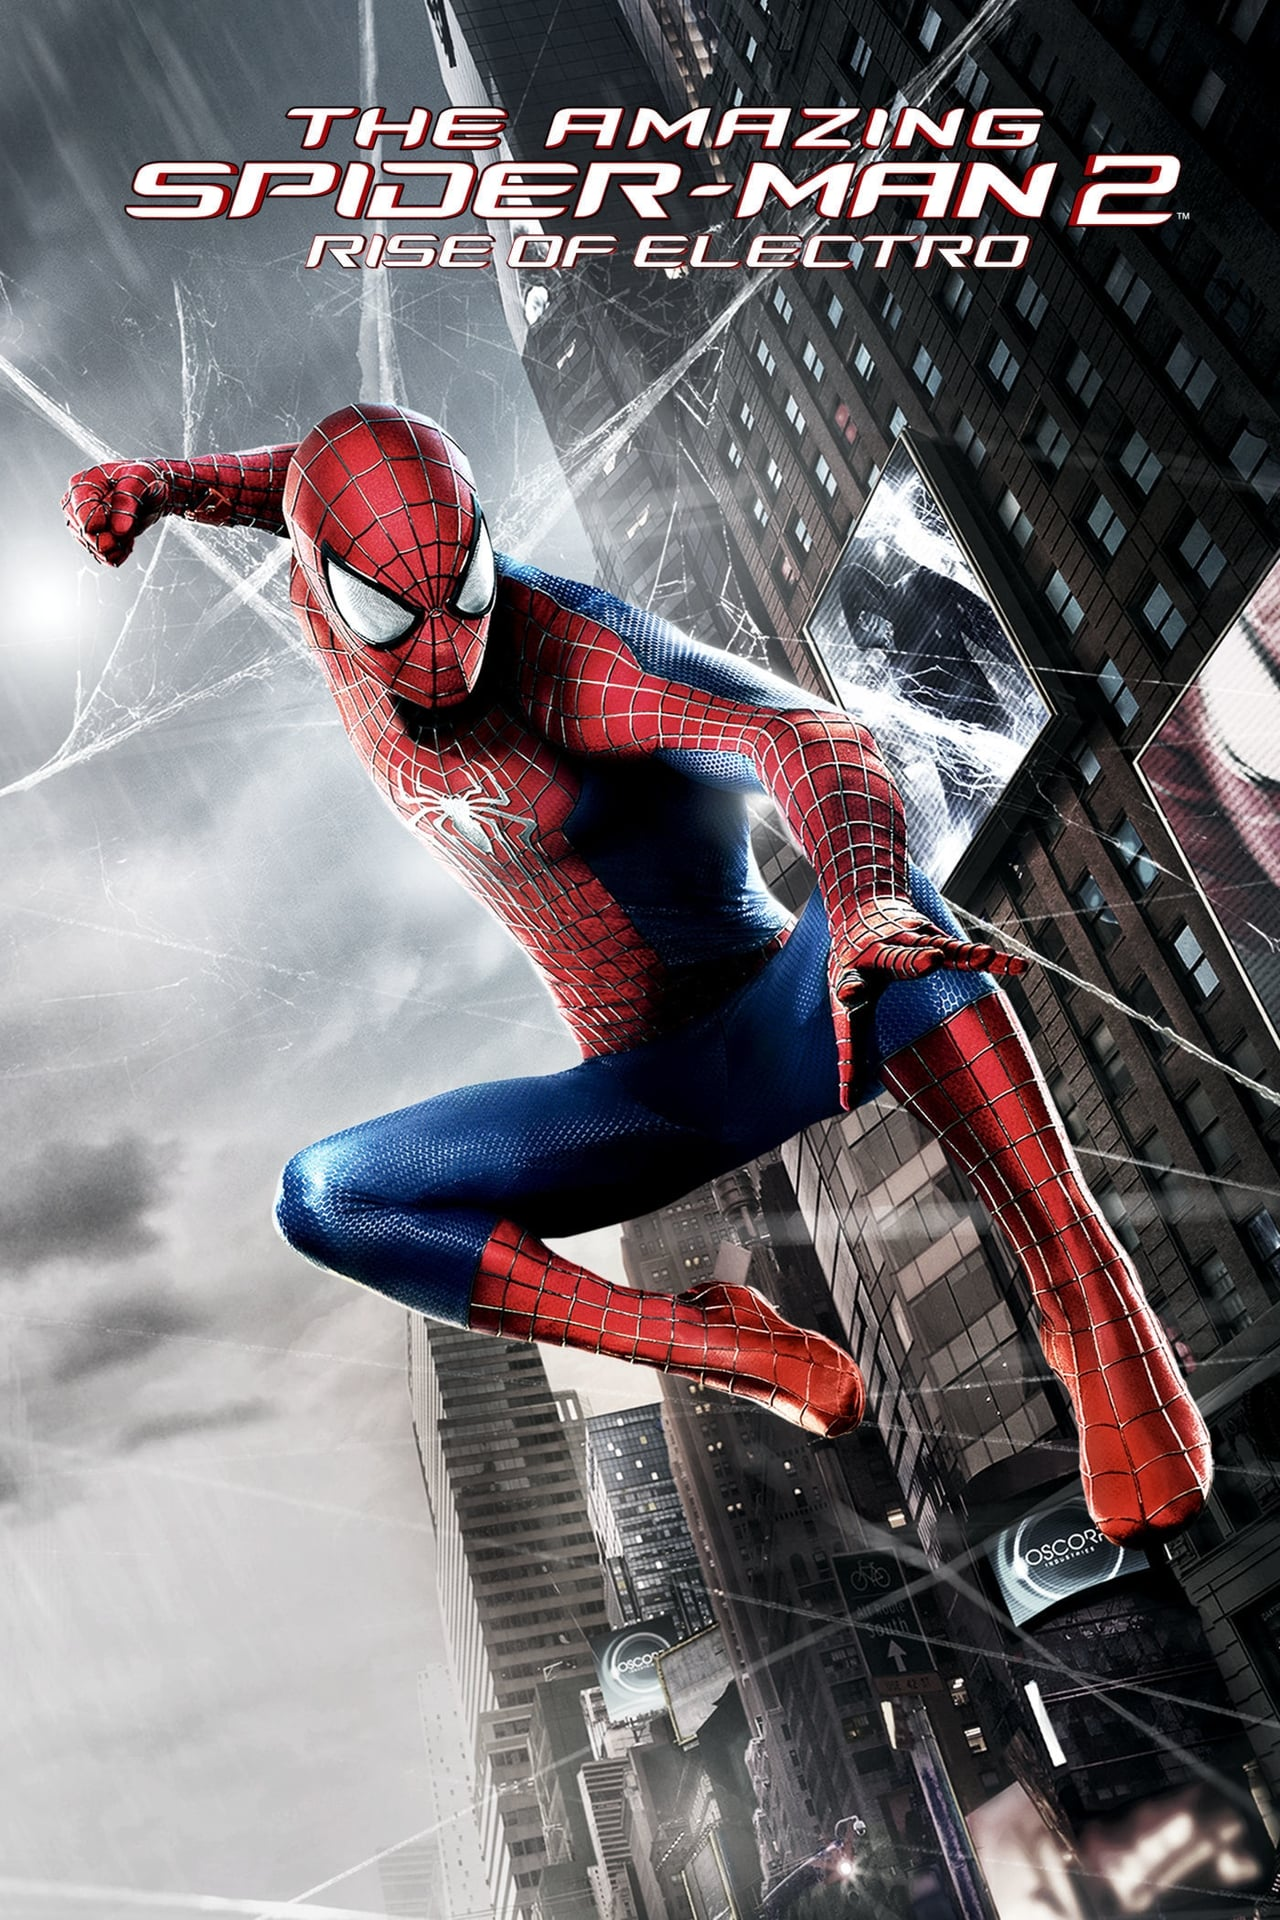 The Amazing Spider Man 2 Streaming